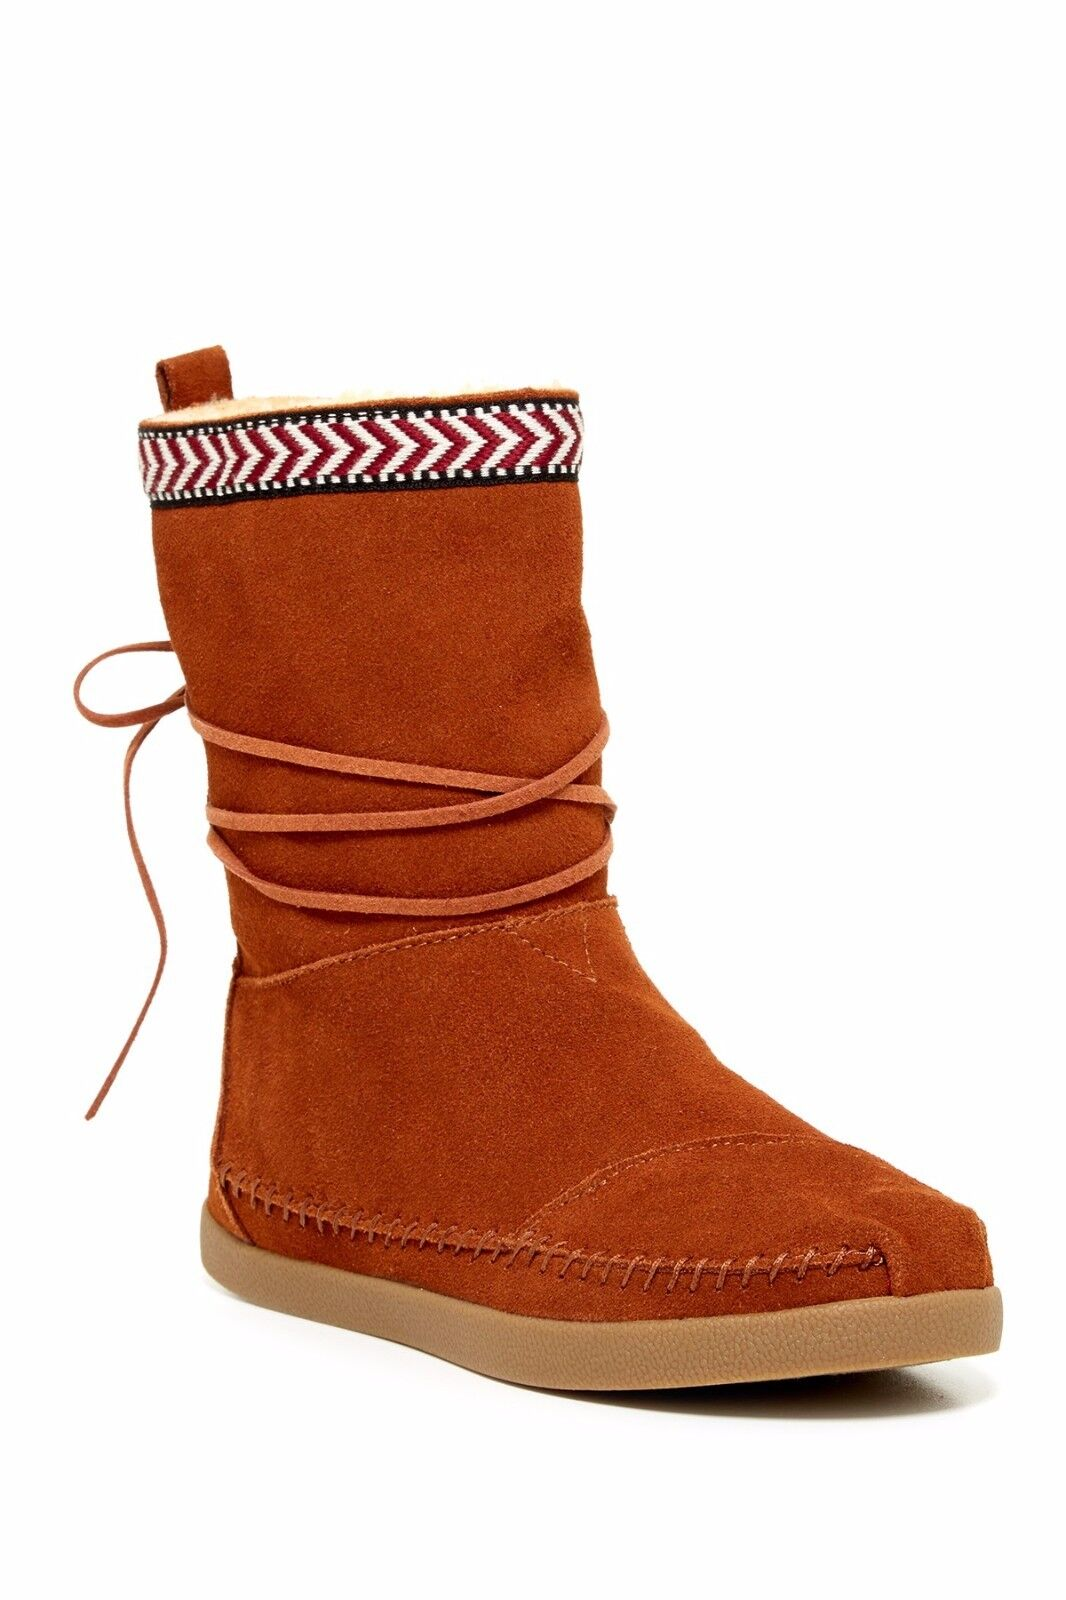 TOMS NEPAL BOOTS CHESTNUT SUEDE VERY RARE WOMENS SIZE 6.5B NEW WITH BOX